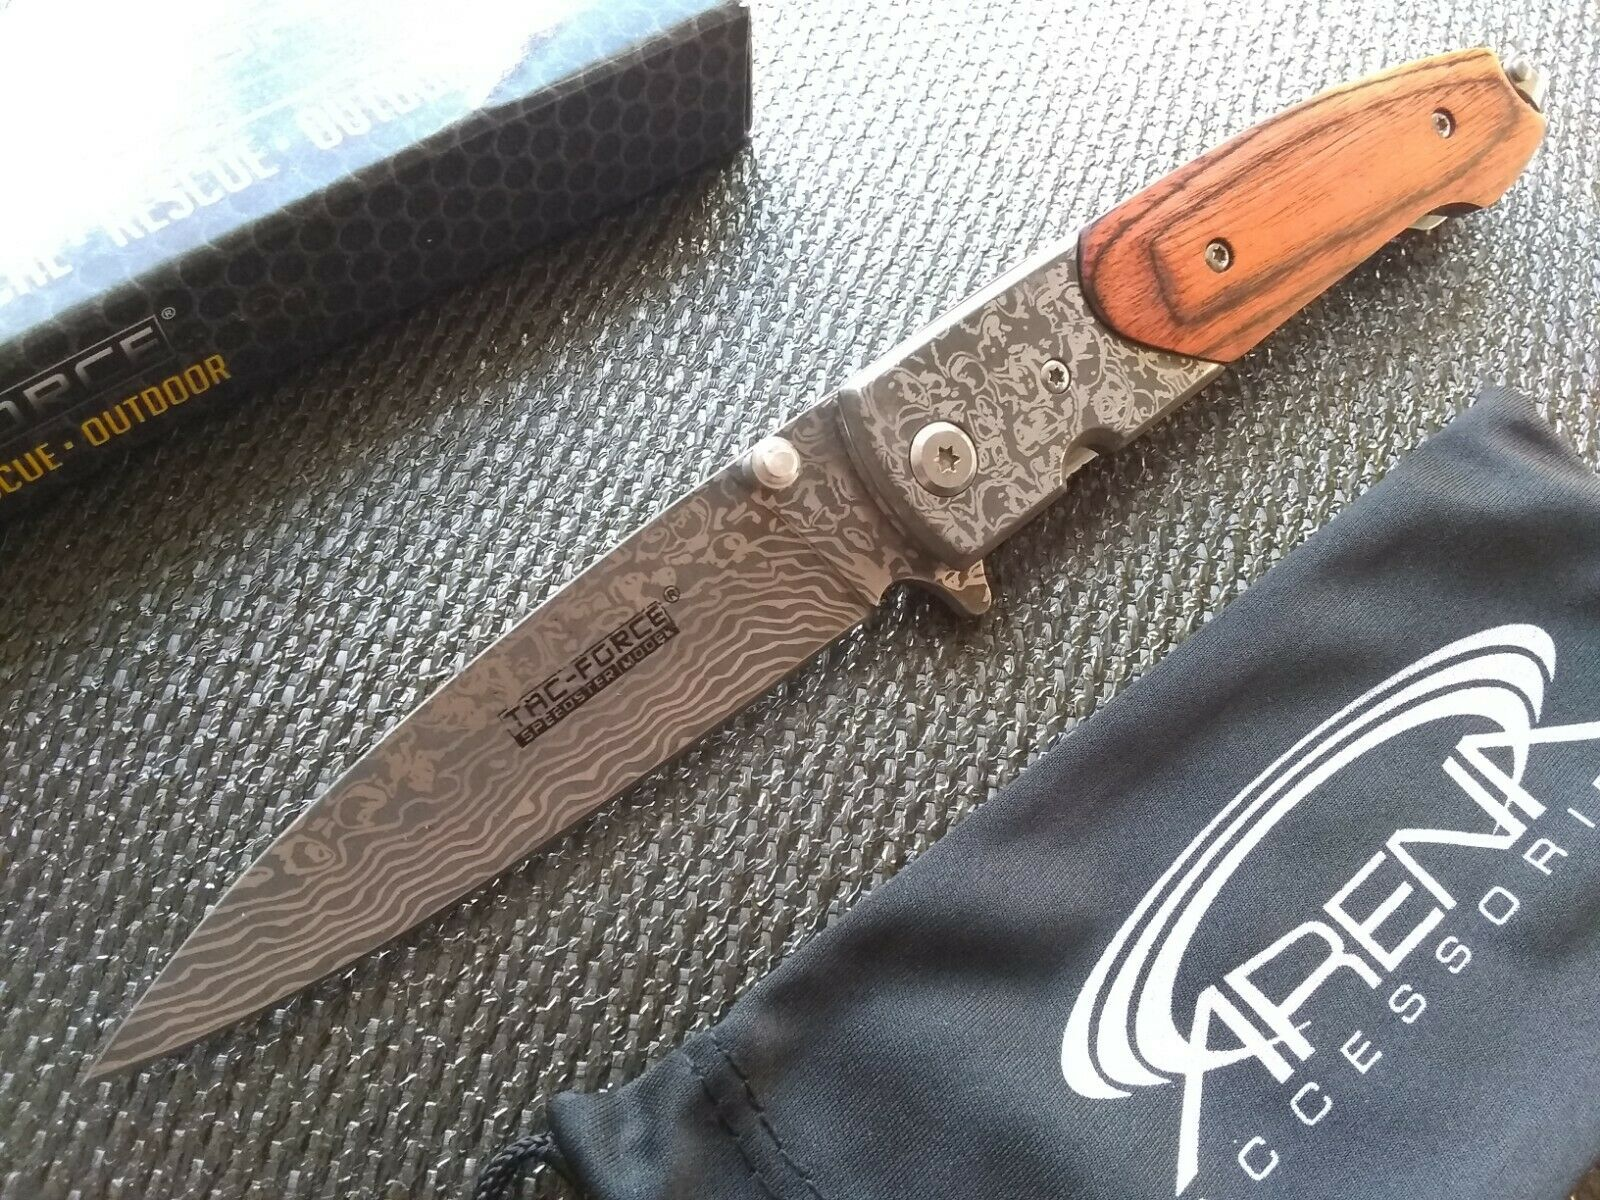 EDC Faux Damascus Pocket Knife Spring Assist Flipper Blade Wood Handle TF-672DBW